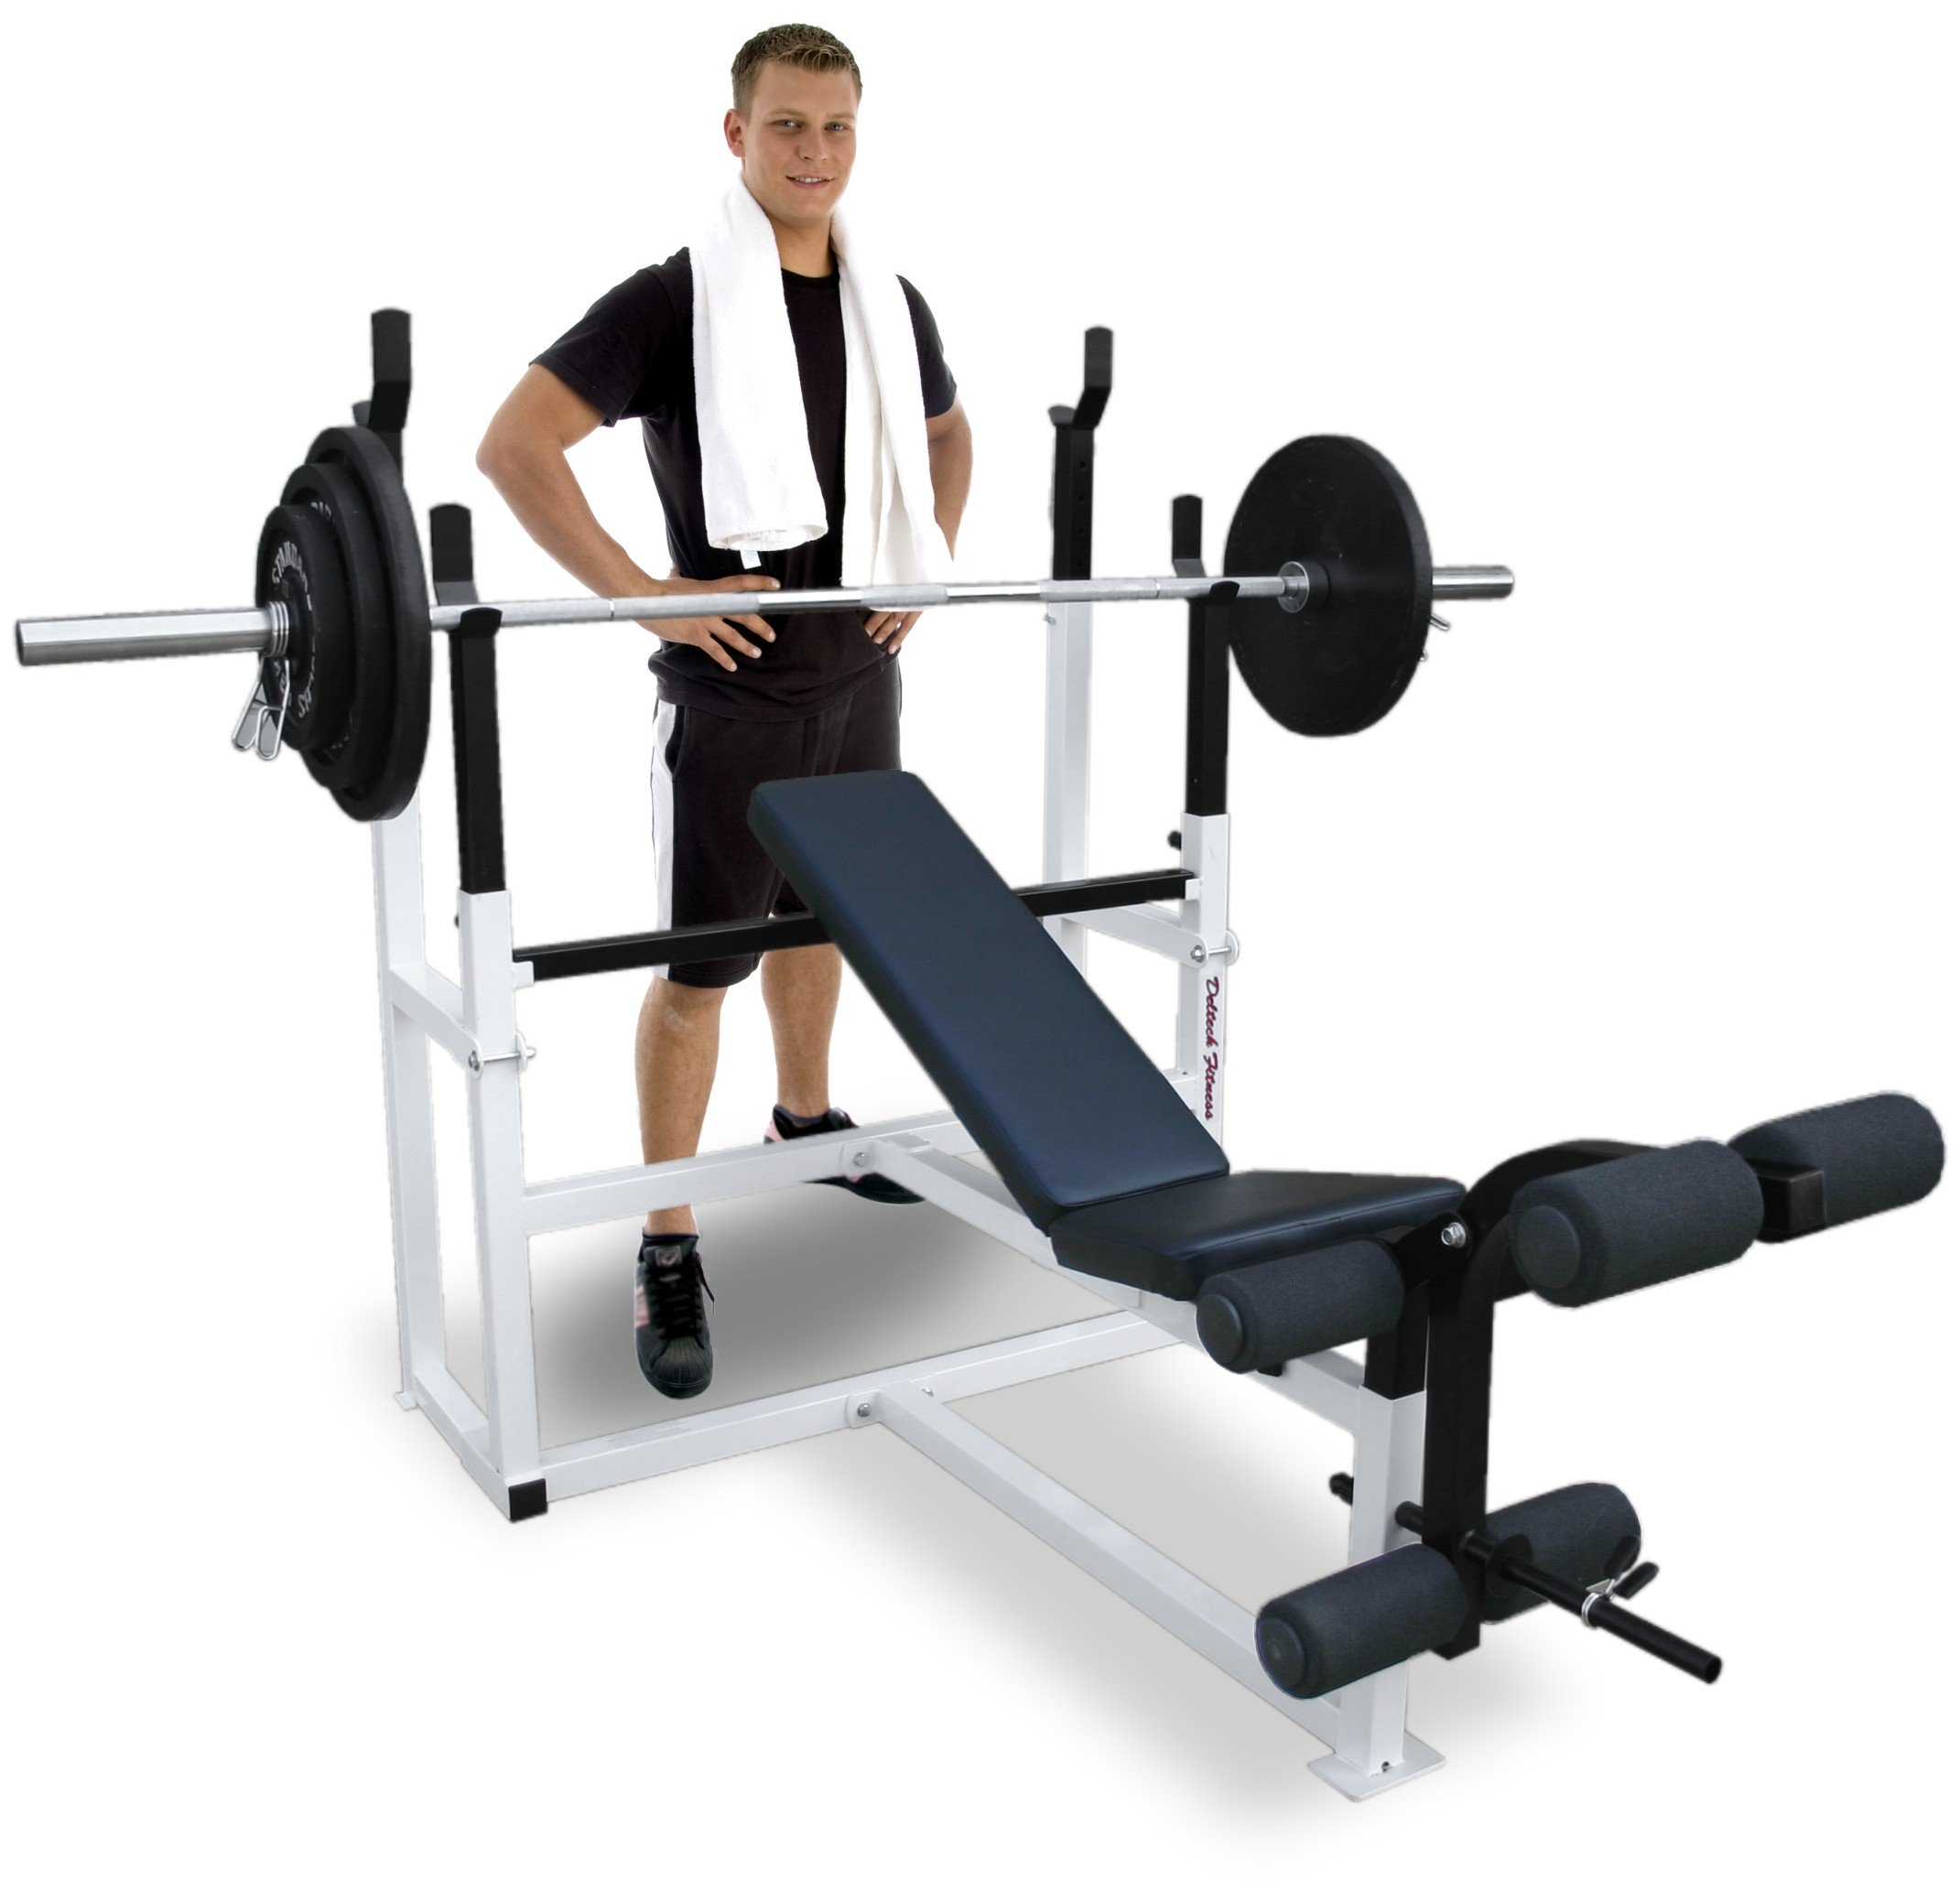 Deltech Fitness Olympic Squat Combo Bench